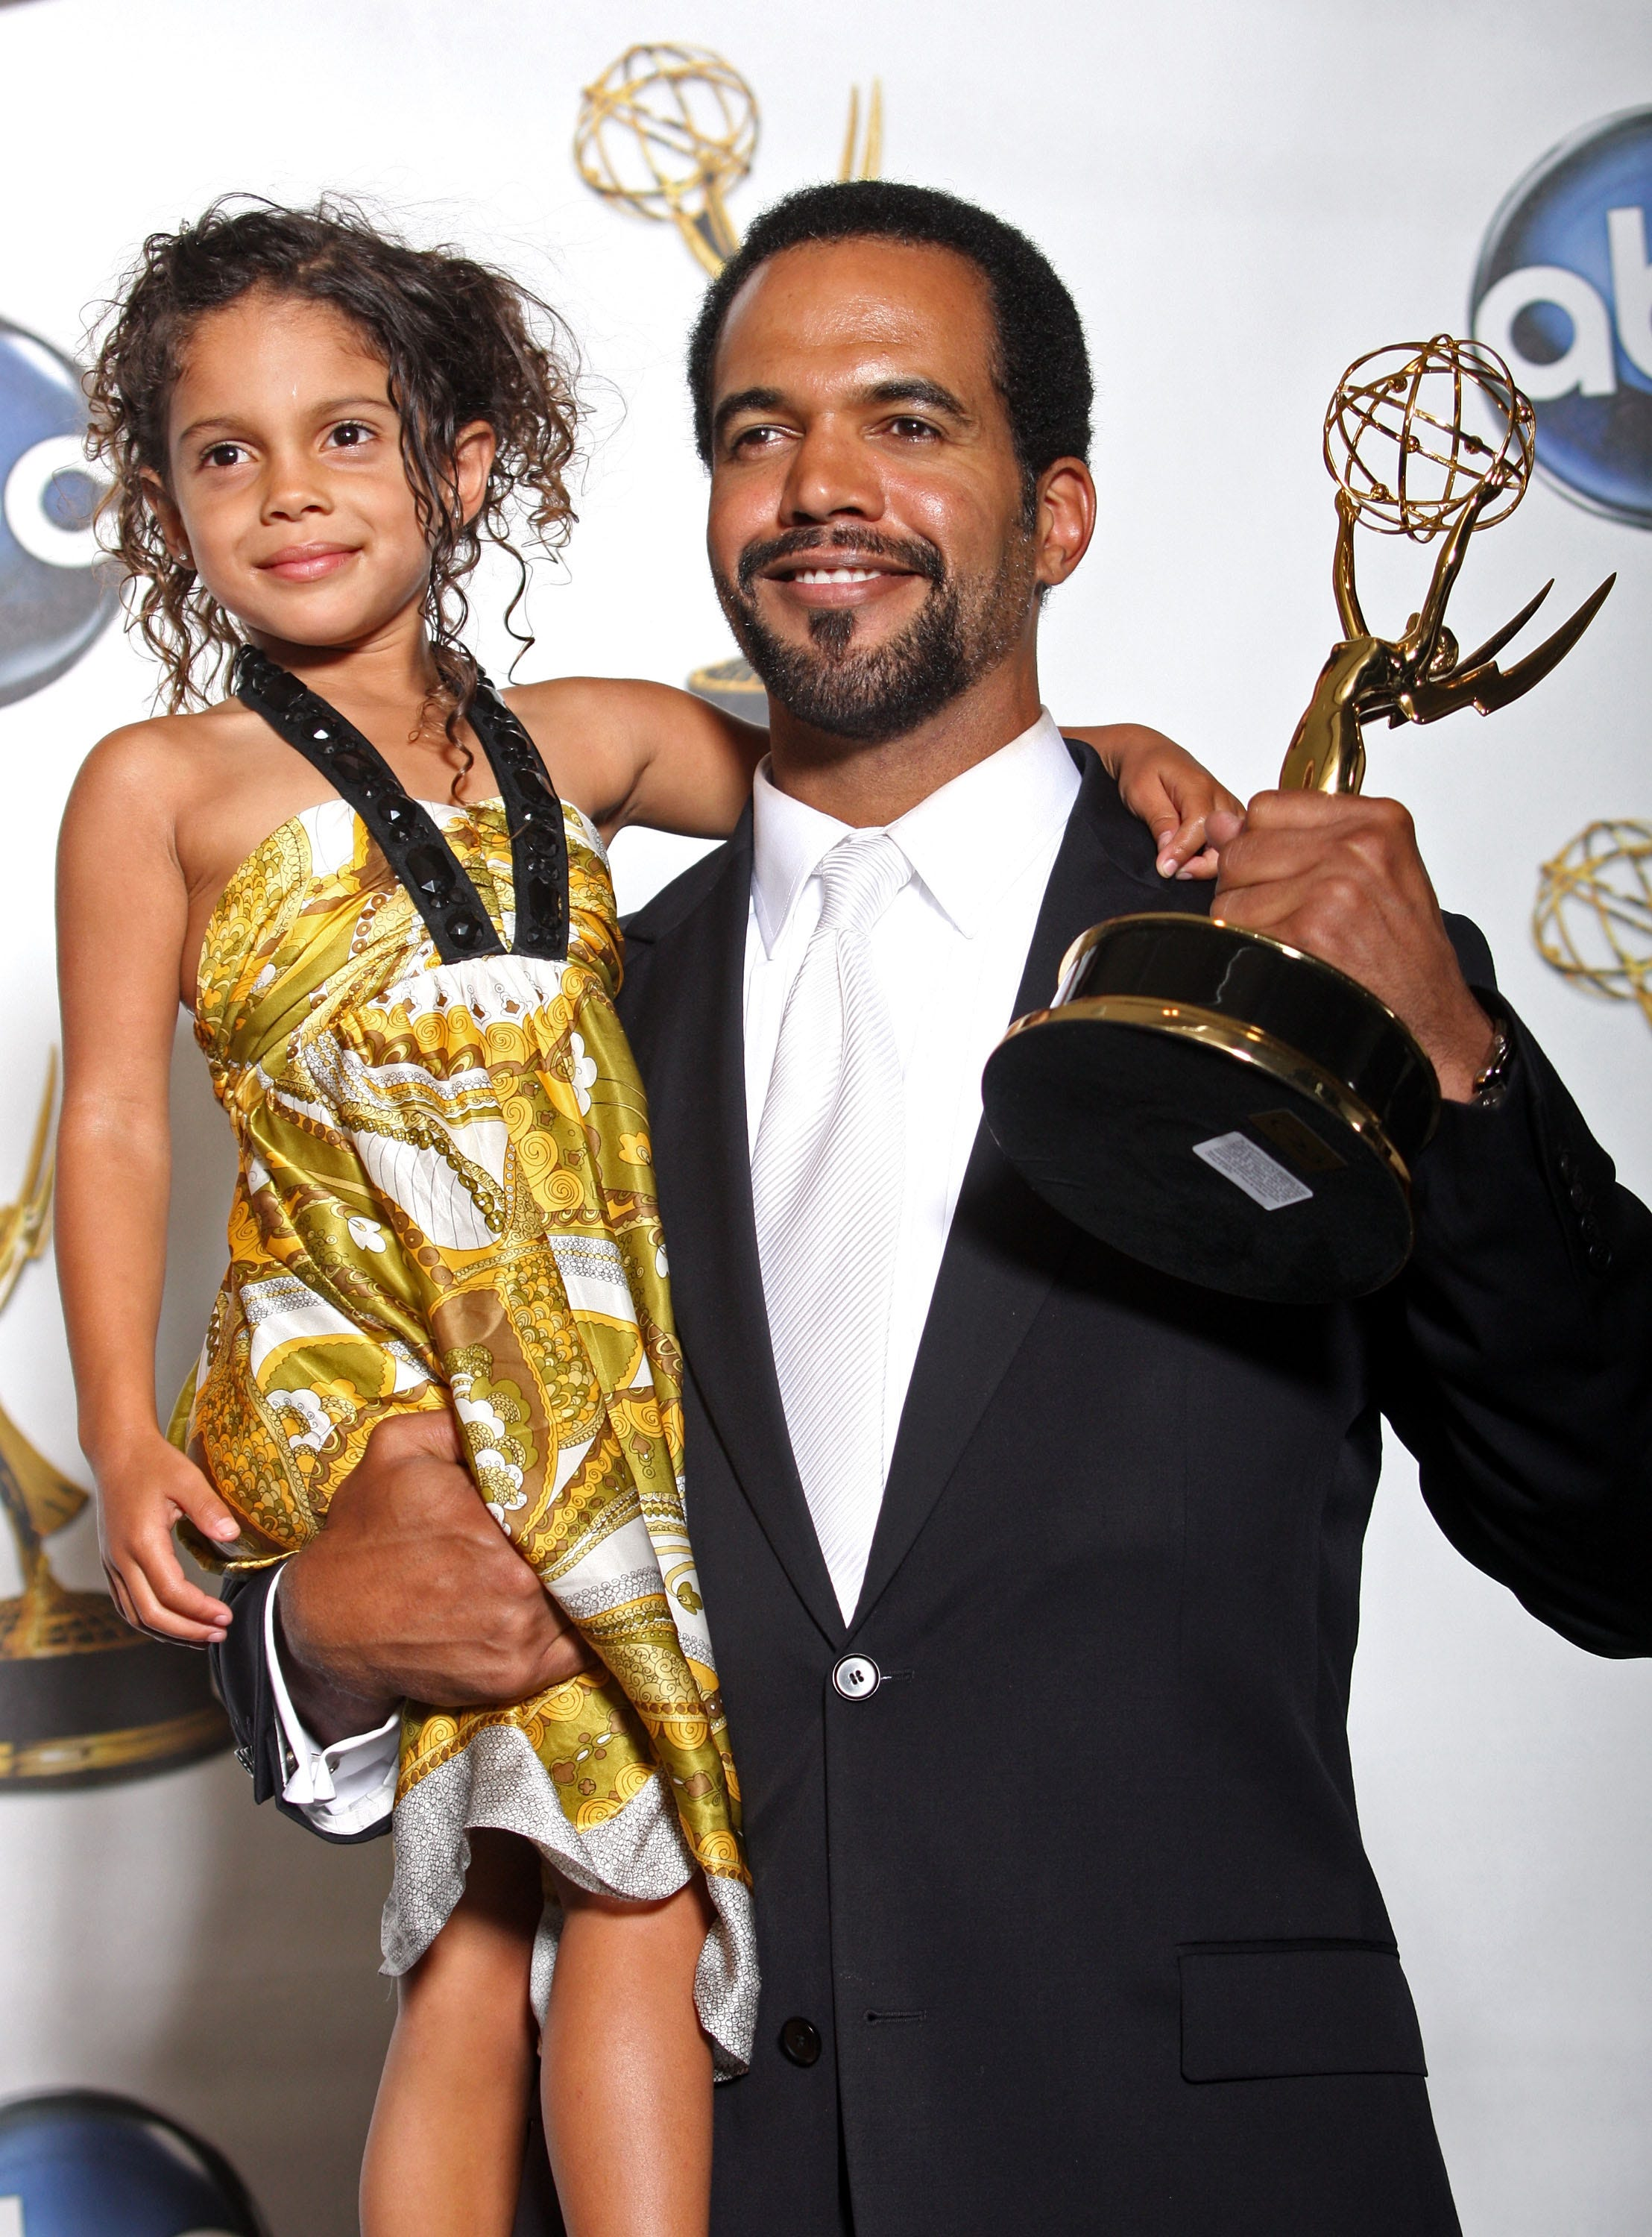 """Young and the Restless"" star Kristoff St. John, who played the character of Neil Winters since 1991 on the CBS daytime drama, has died at age 52. We're looking back at his life and career, including this moment when he posed with the award for outstanding supporting actor In a drama series for ""The Young and the Restless"" in the press room at the 35th Annual Daytime Emmy Awards back in June 2008."